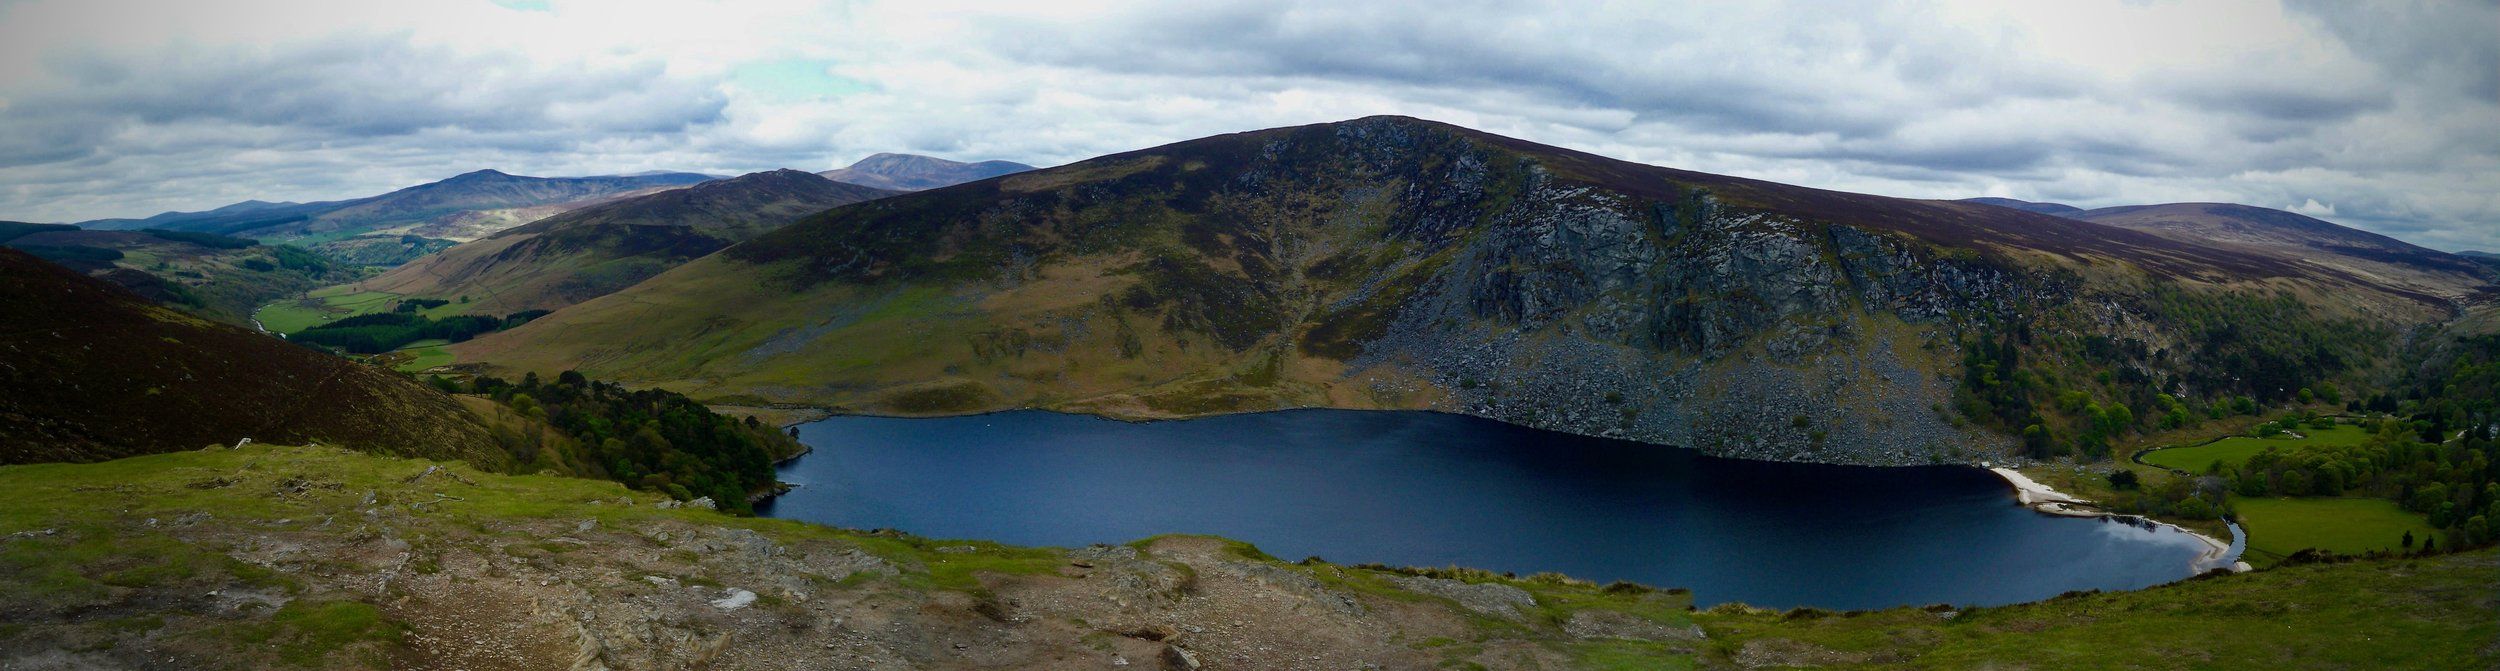 Guinness Lake (Lough Tay) ~ Wicklow Mountains, Ireland